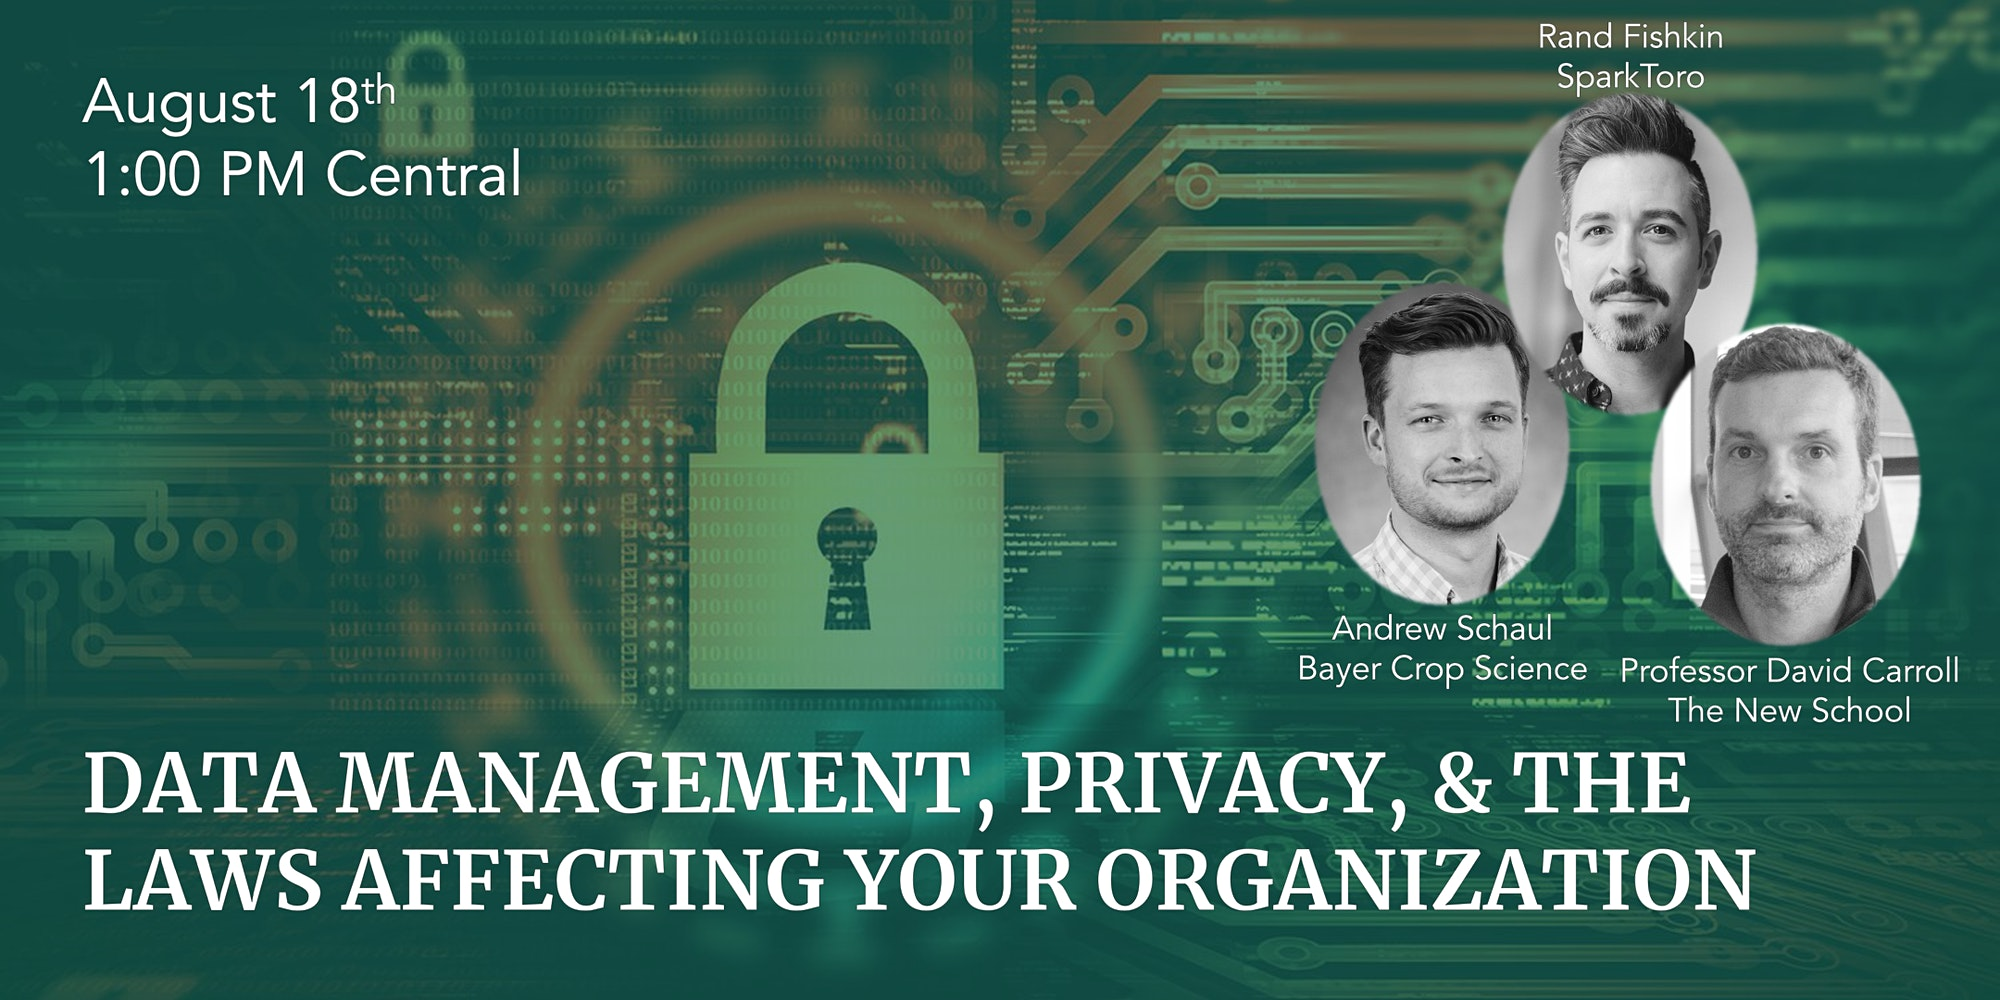 Data Management, Privacy, & The Laws Affecting Your Organization